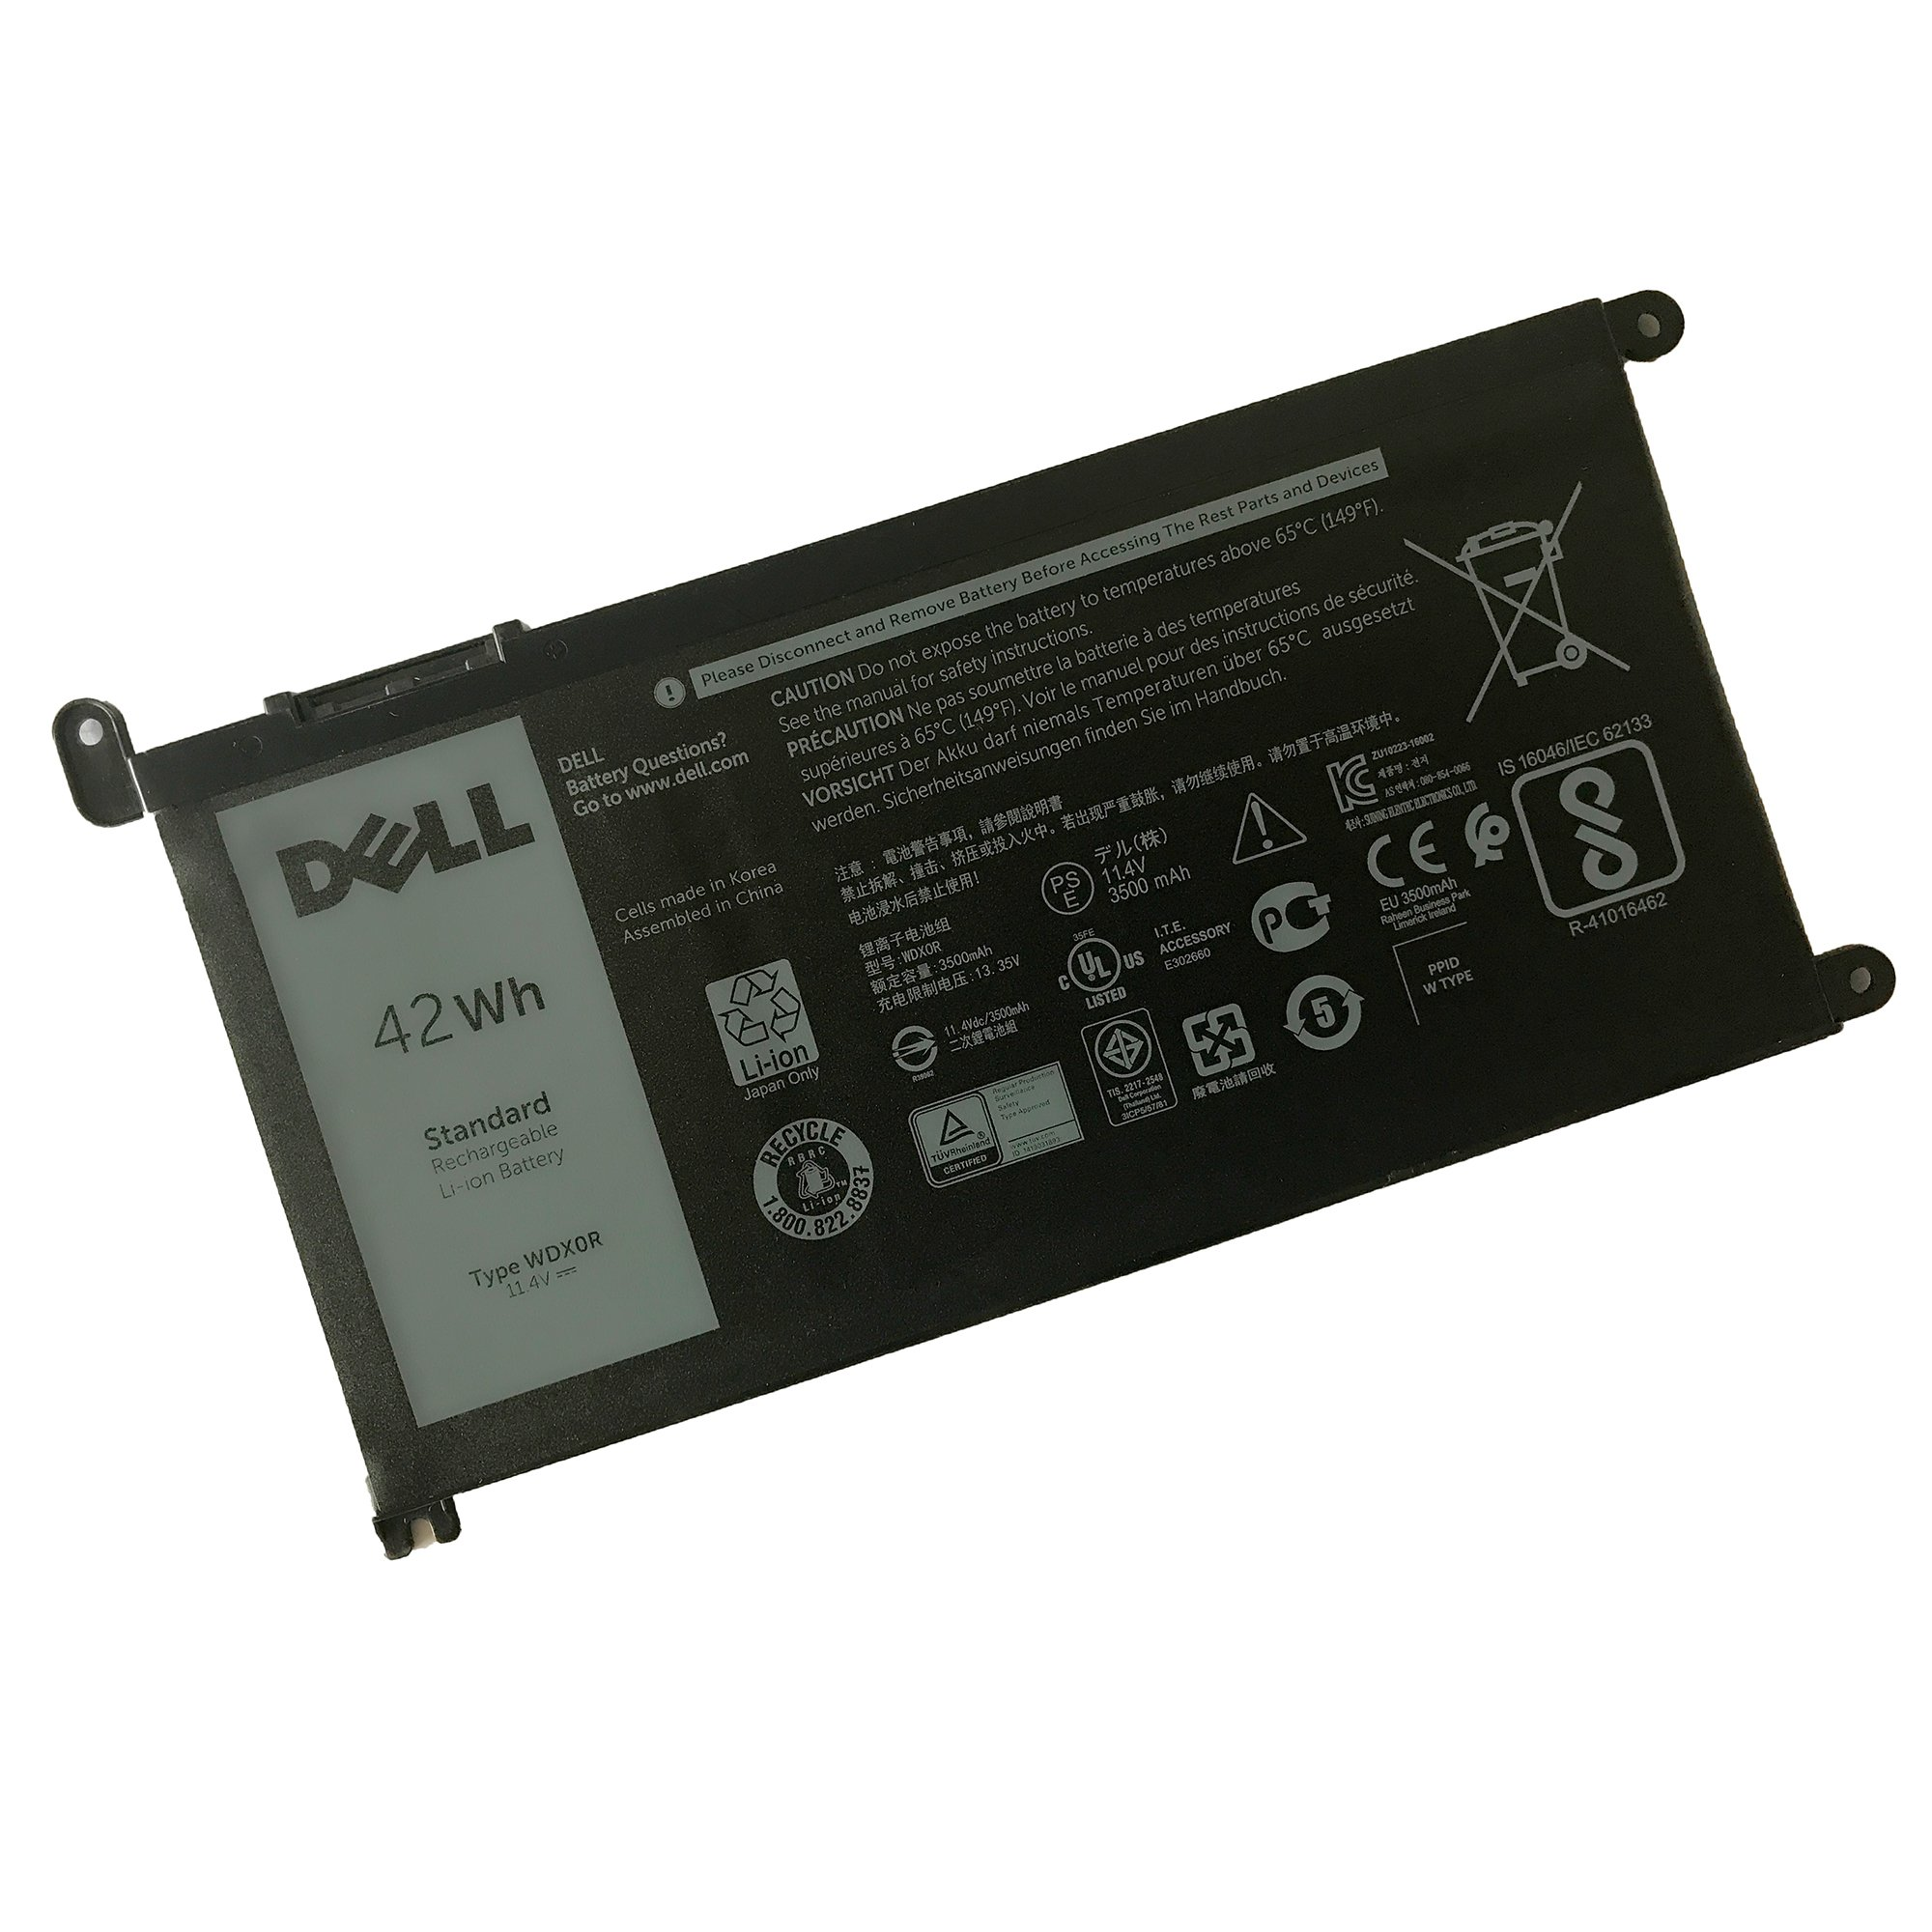 DELL WDX0R Notebook Battery 11.4V 42WH for DELL Inspiron 5368 5378 5565 5567 5568 5578 5765 5767 7368 7378 7560 7570 7579 7569 Best OEM Quality